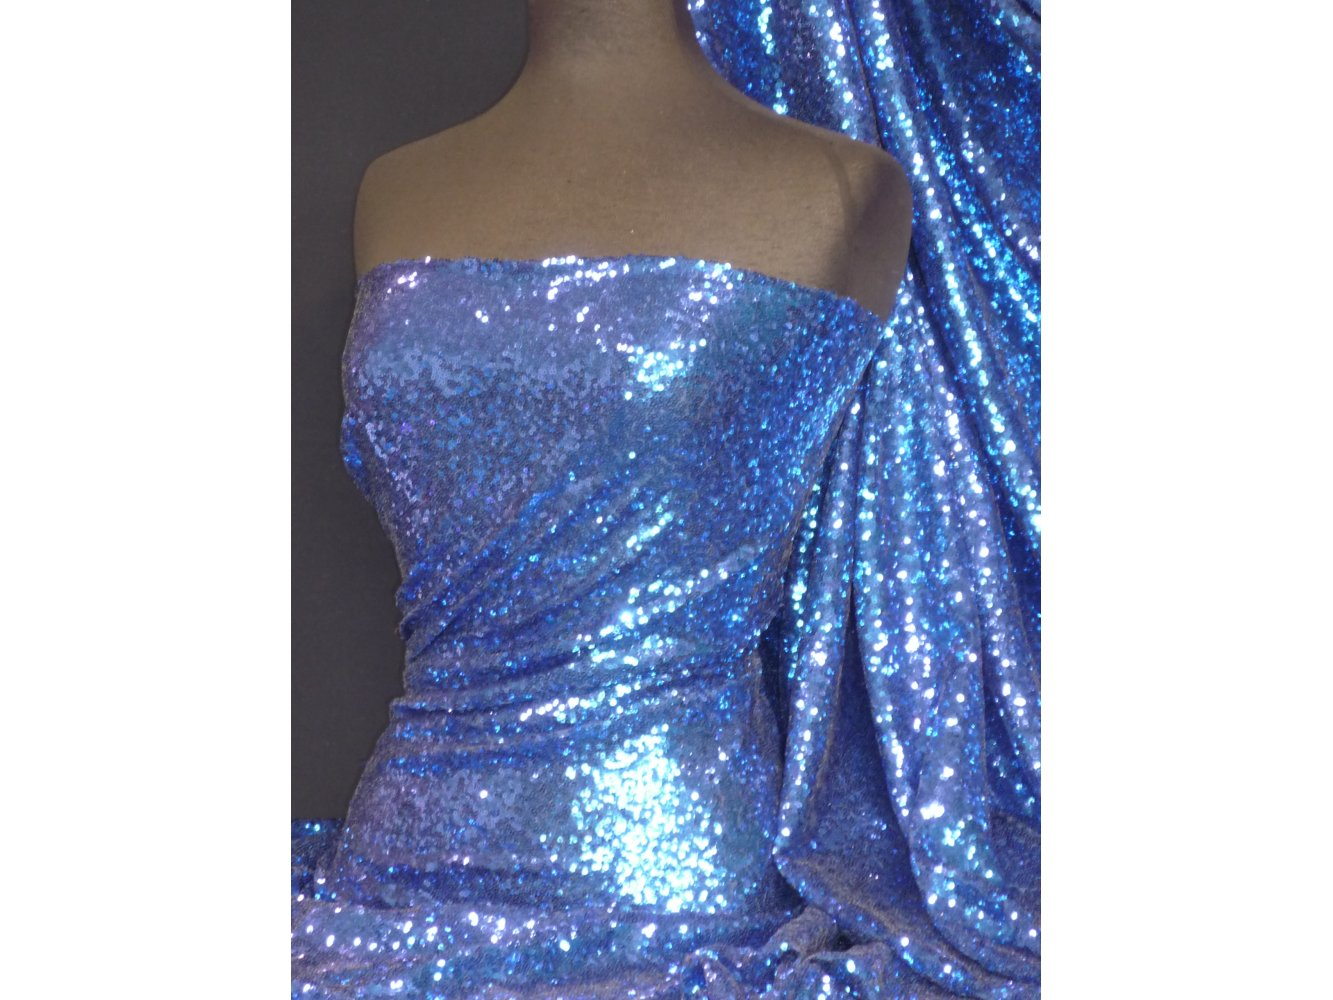 1cc1ab28 Showtime Fabric All Over Stitched 3mm Sequins - Royal Blue SEQ53 RBL